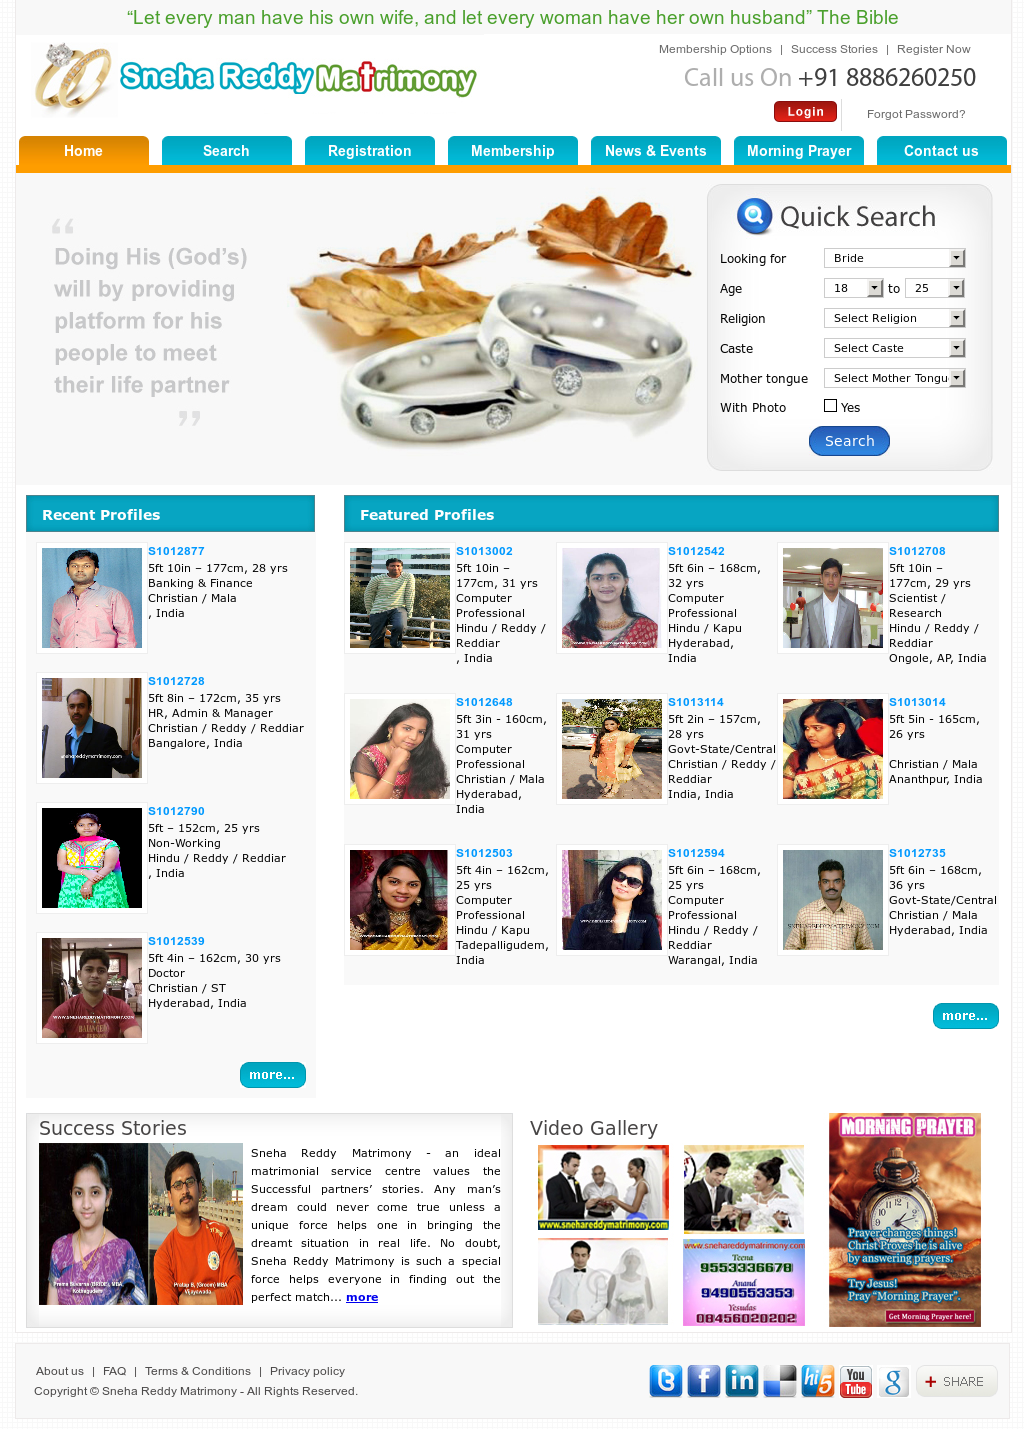 Sneha Reddy Matrimony Competitors, Revenue and Employees